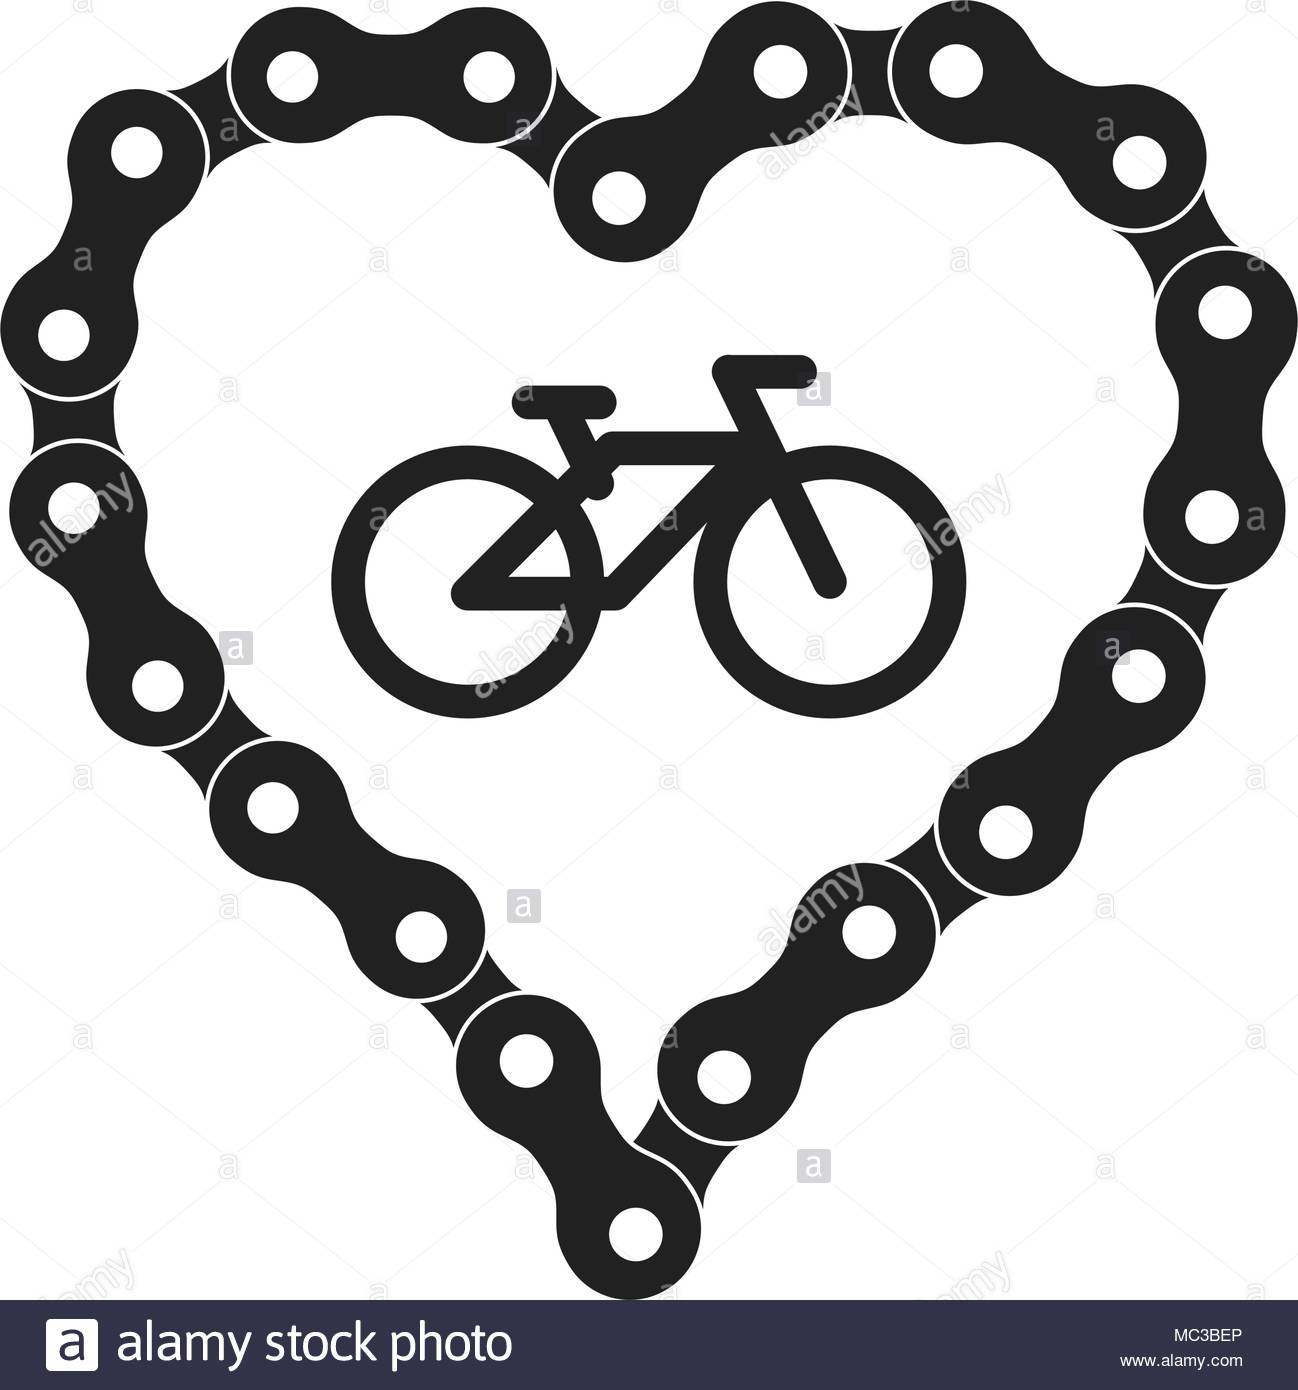 1298x1390 Vector Heart Made Of Bike Or Bicycle Chain. Black Heart Silhouette